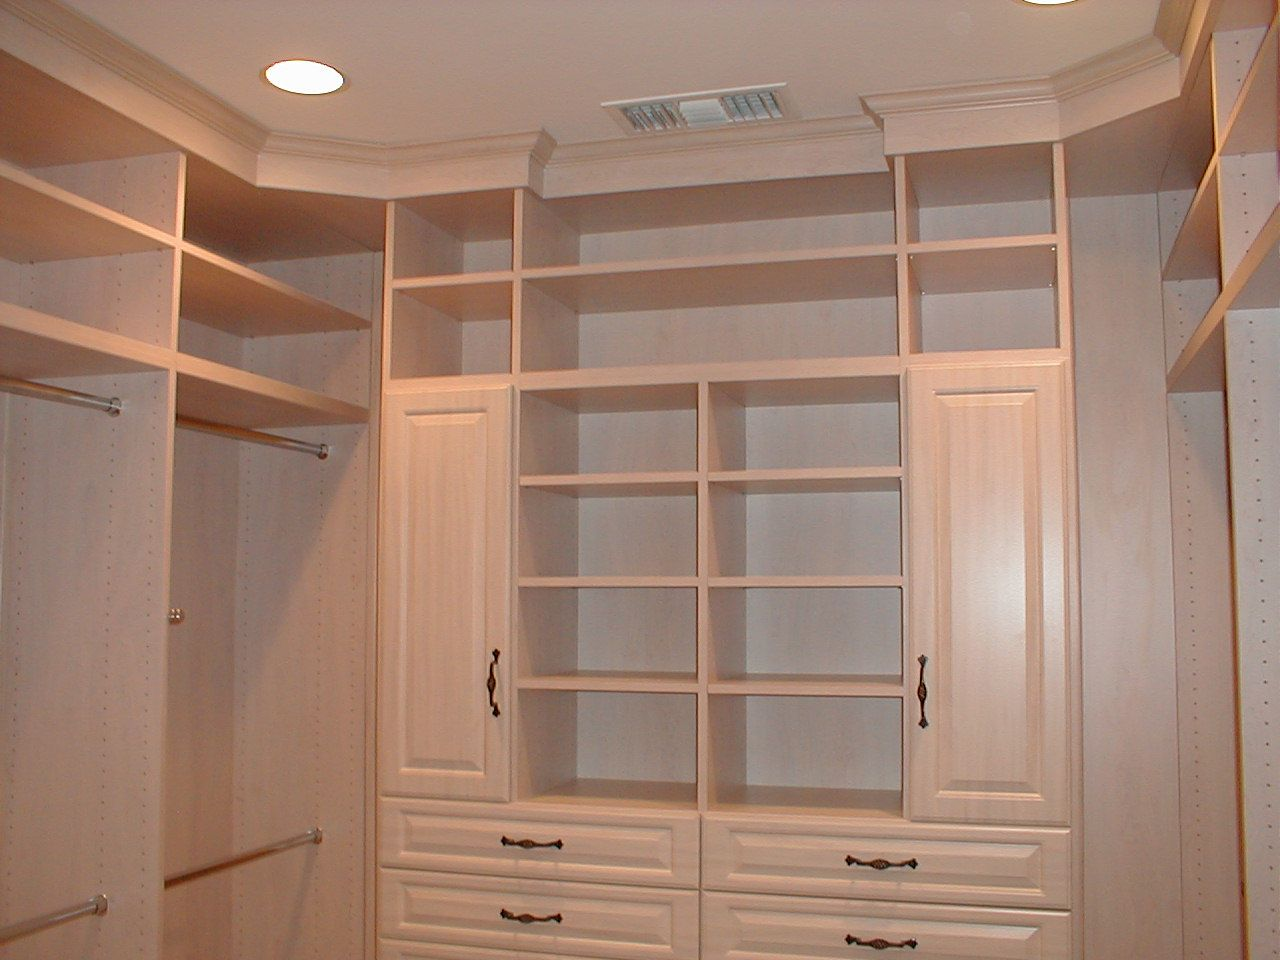 Design Bedroom Closet Stunning Decorating Design